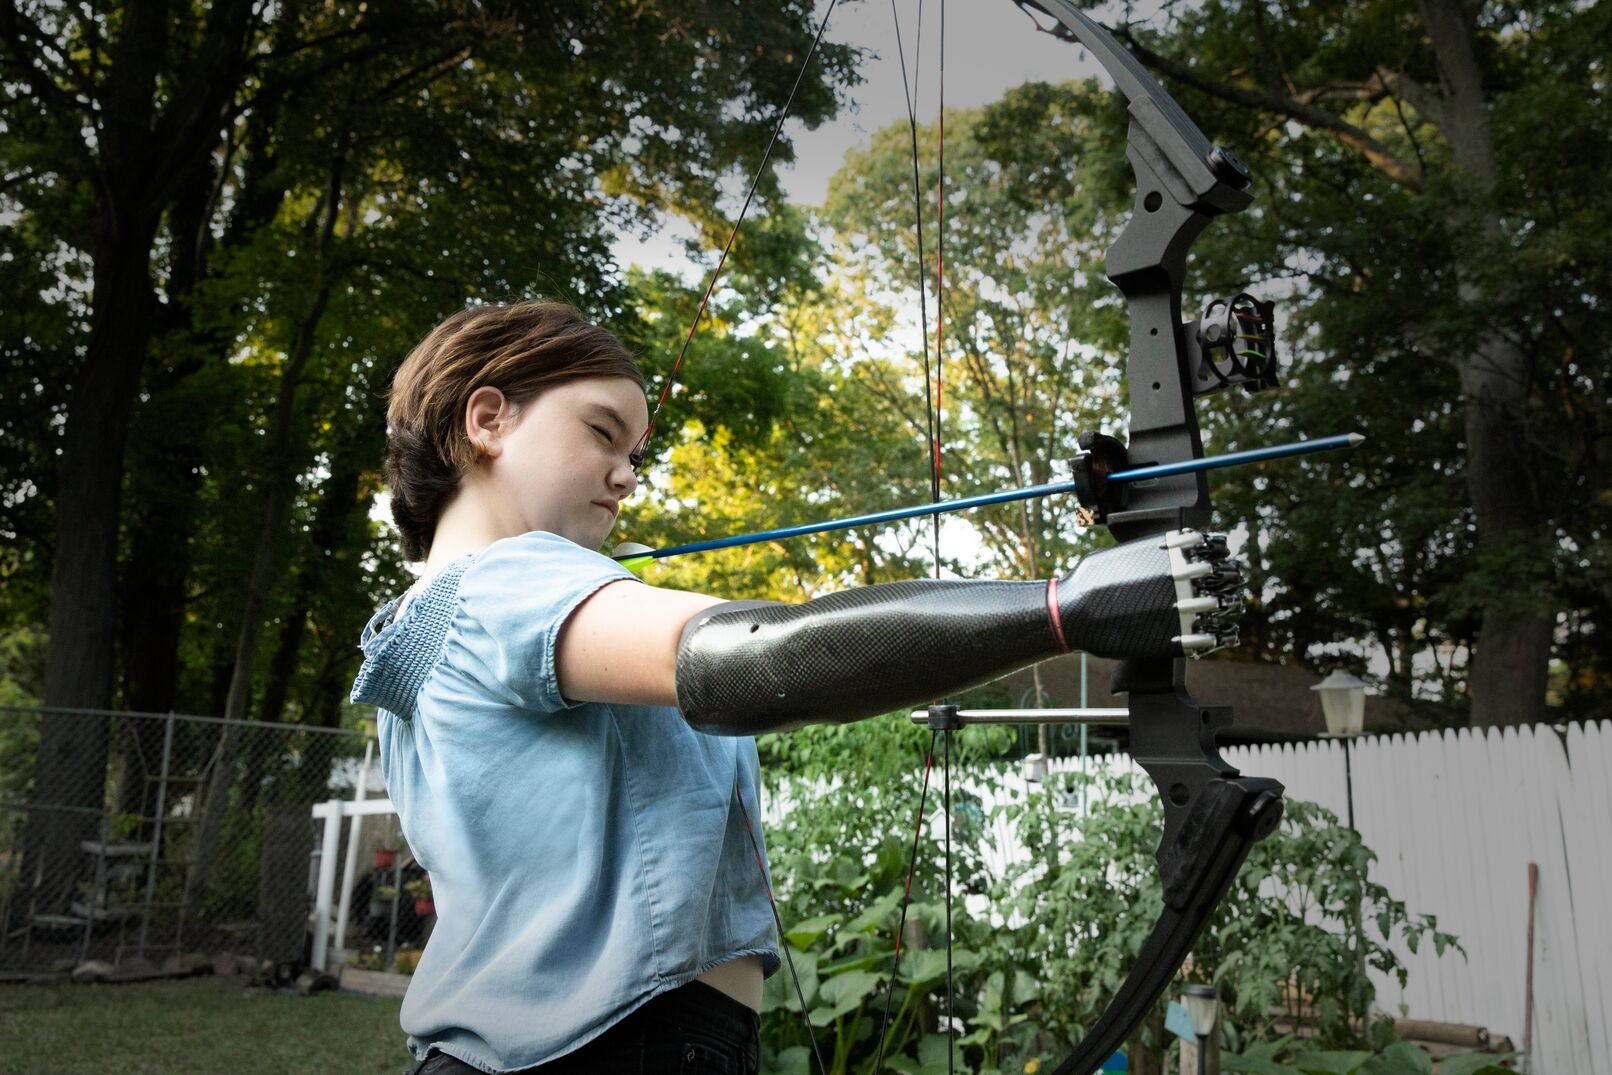 13-year-old girl with a bionic arm shoots a bow and arrow